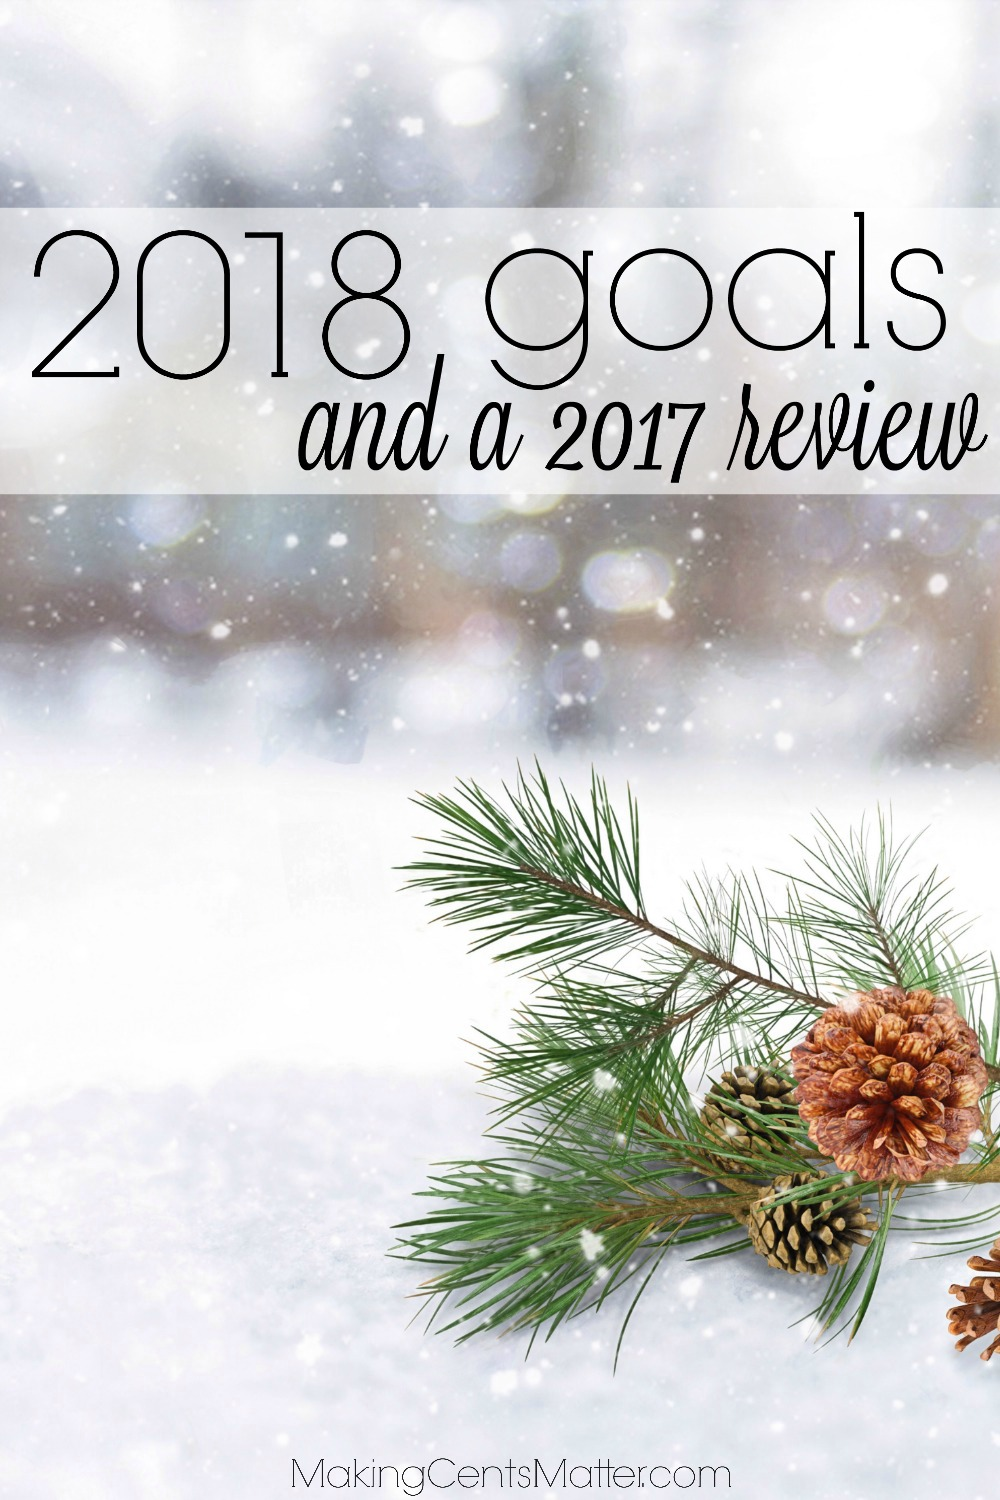 2018 Goals 2017 Review